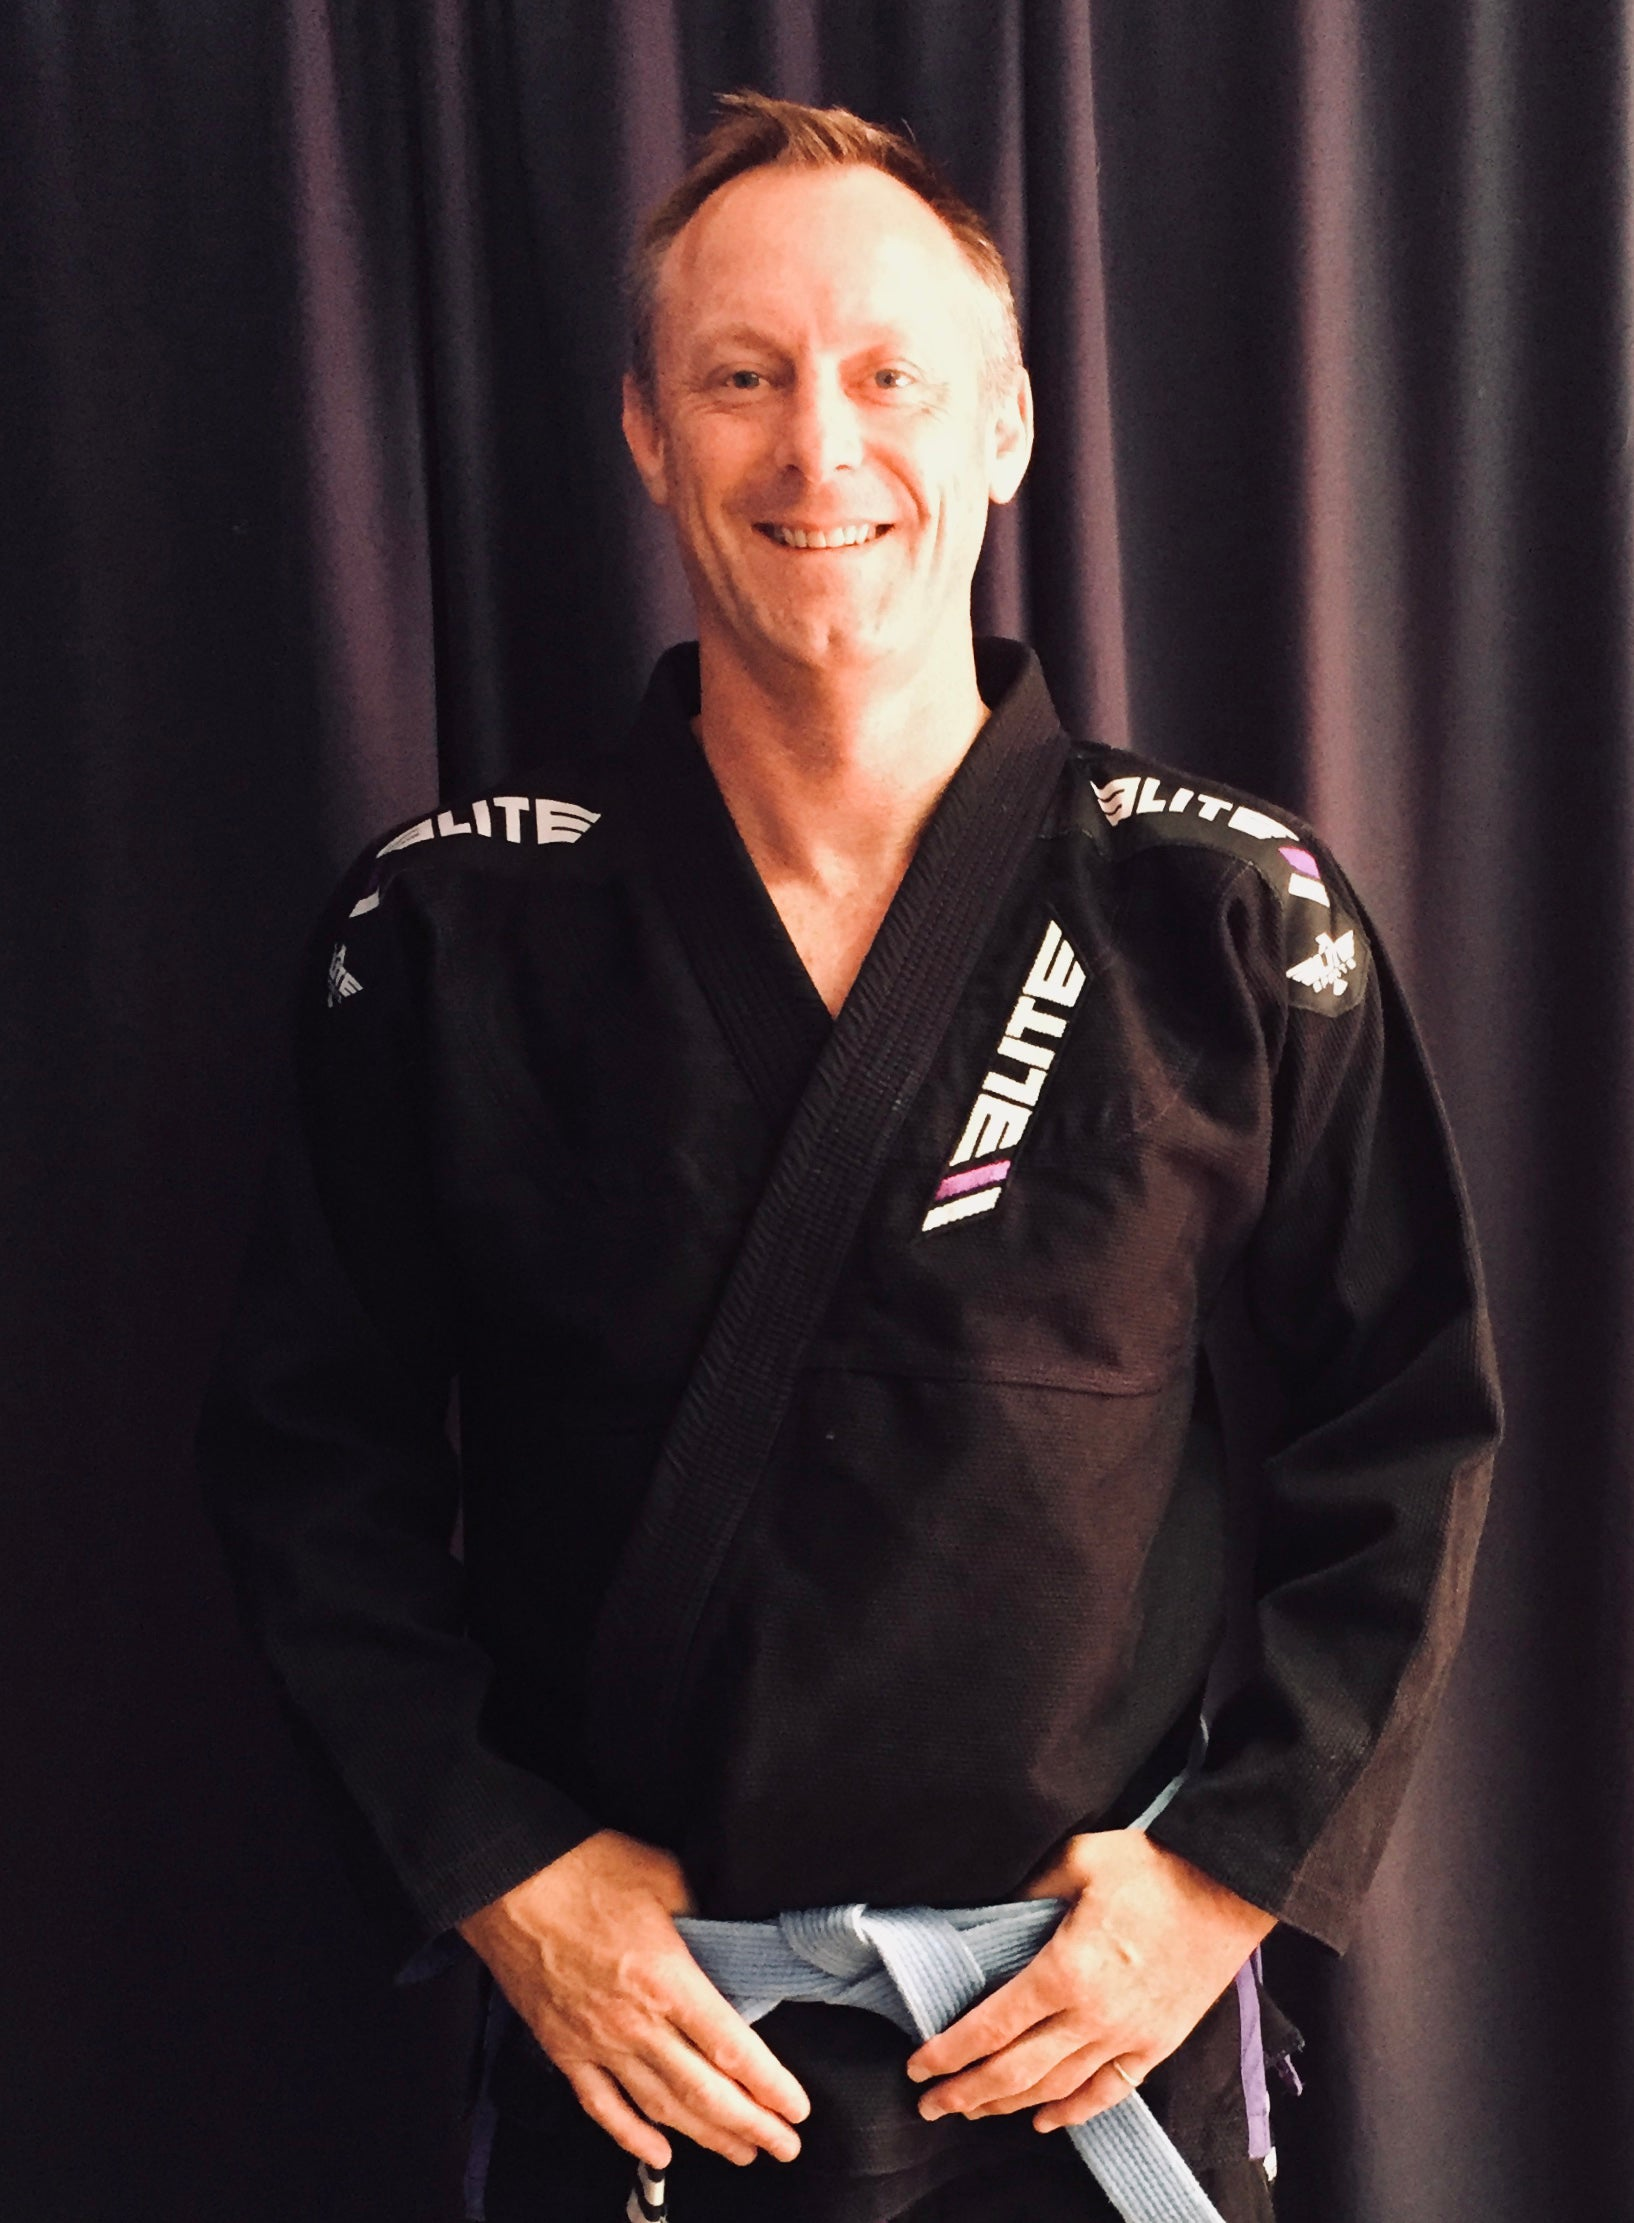 Elite Sports Team Elite Bjj Fighter Jim Clifford image3